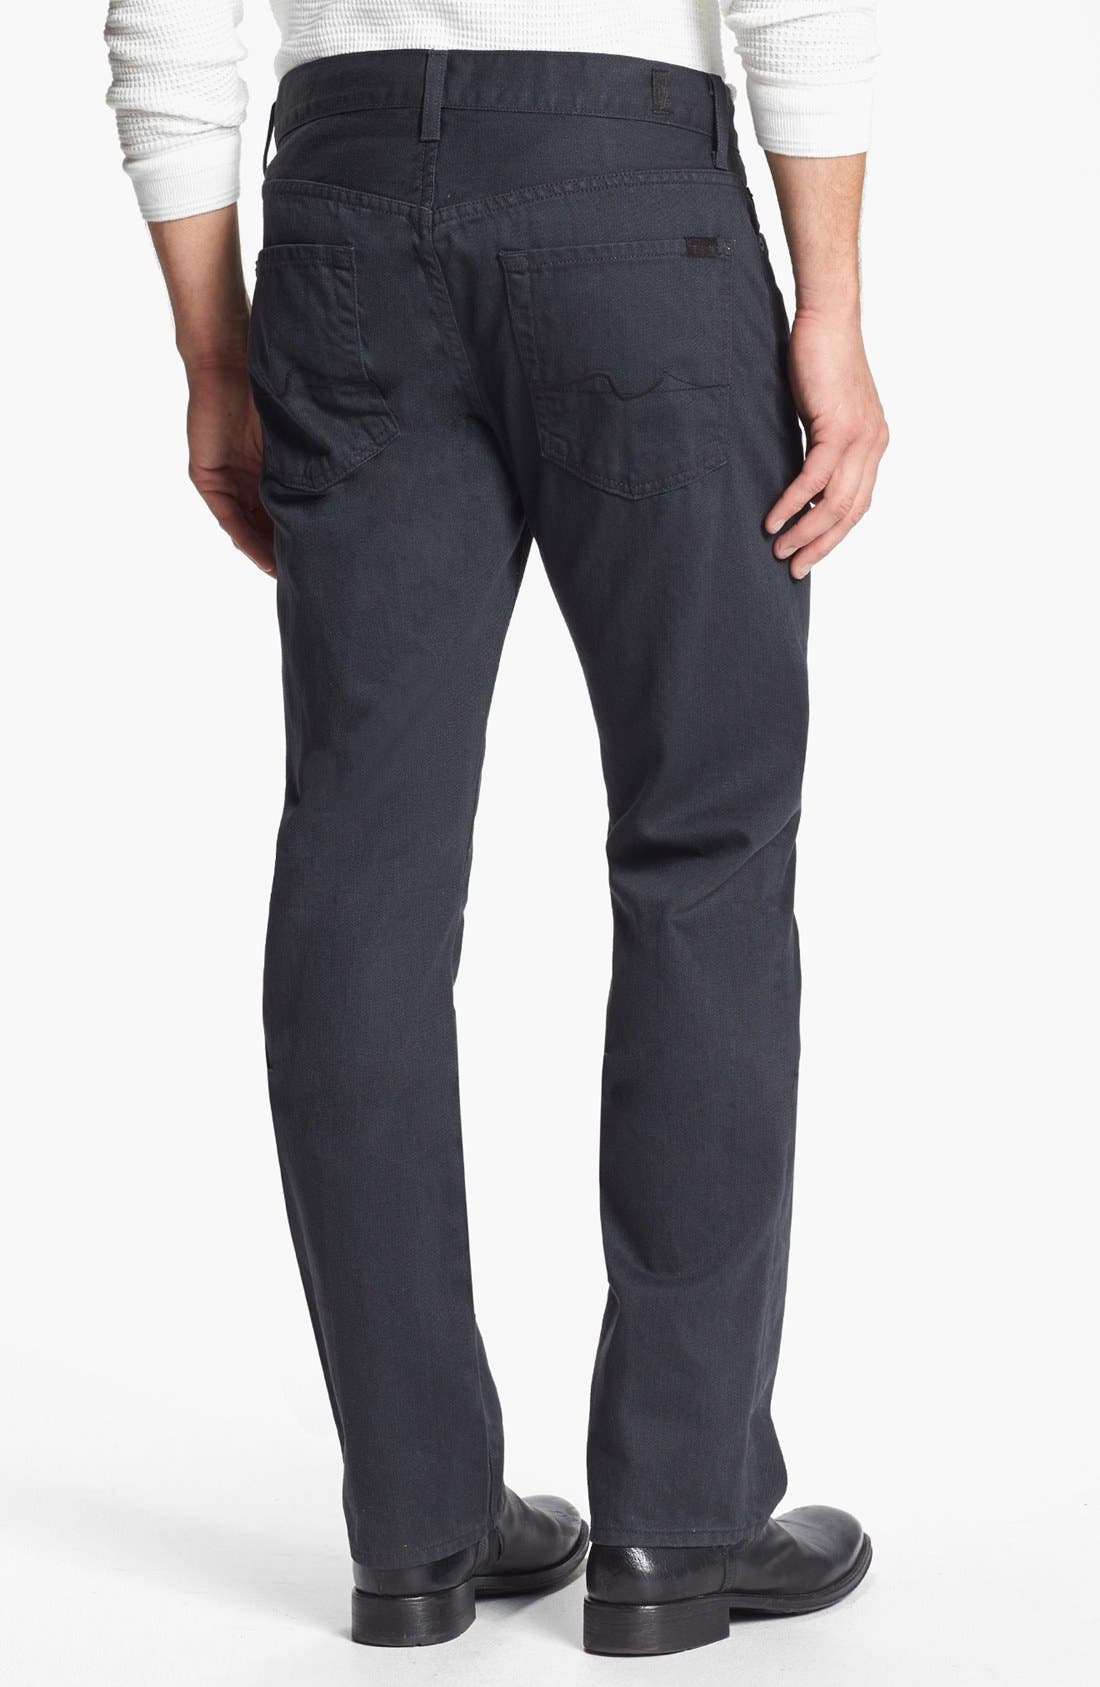 Main Image - 7 For All Mankind® 'Standard' Straight Leg Jeans (Agate Grey)